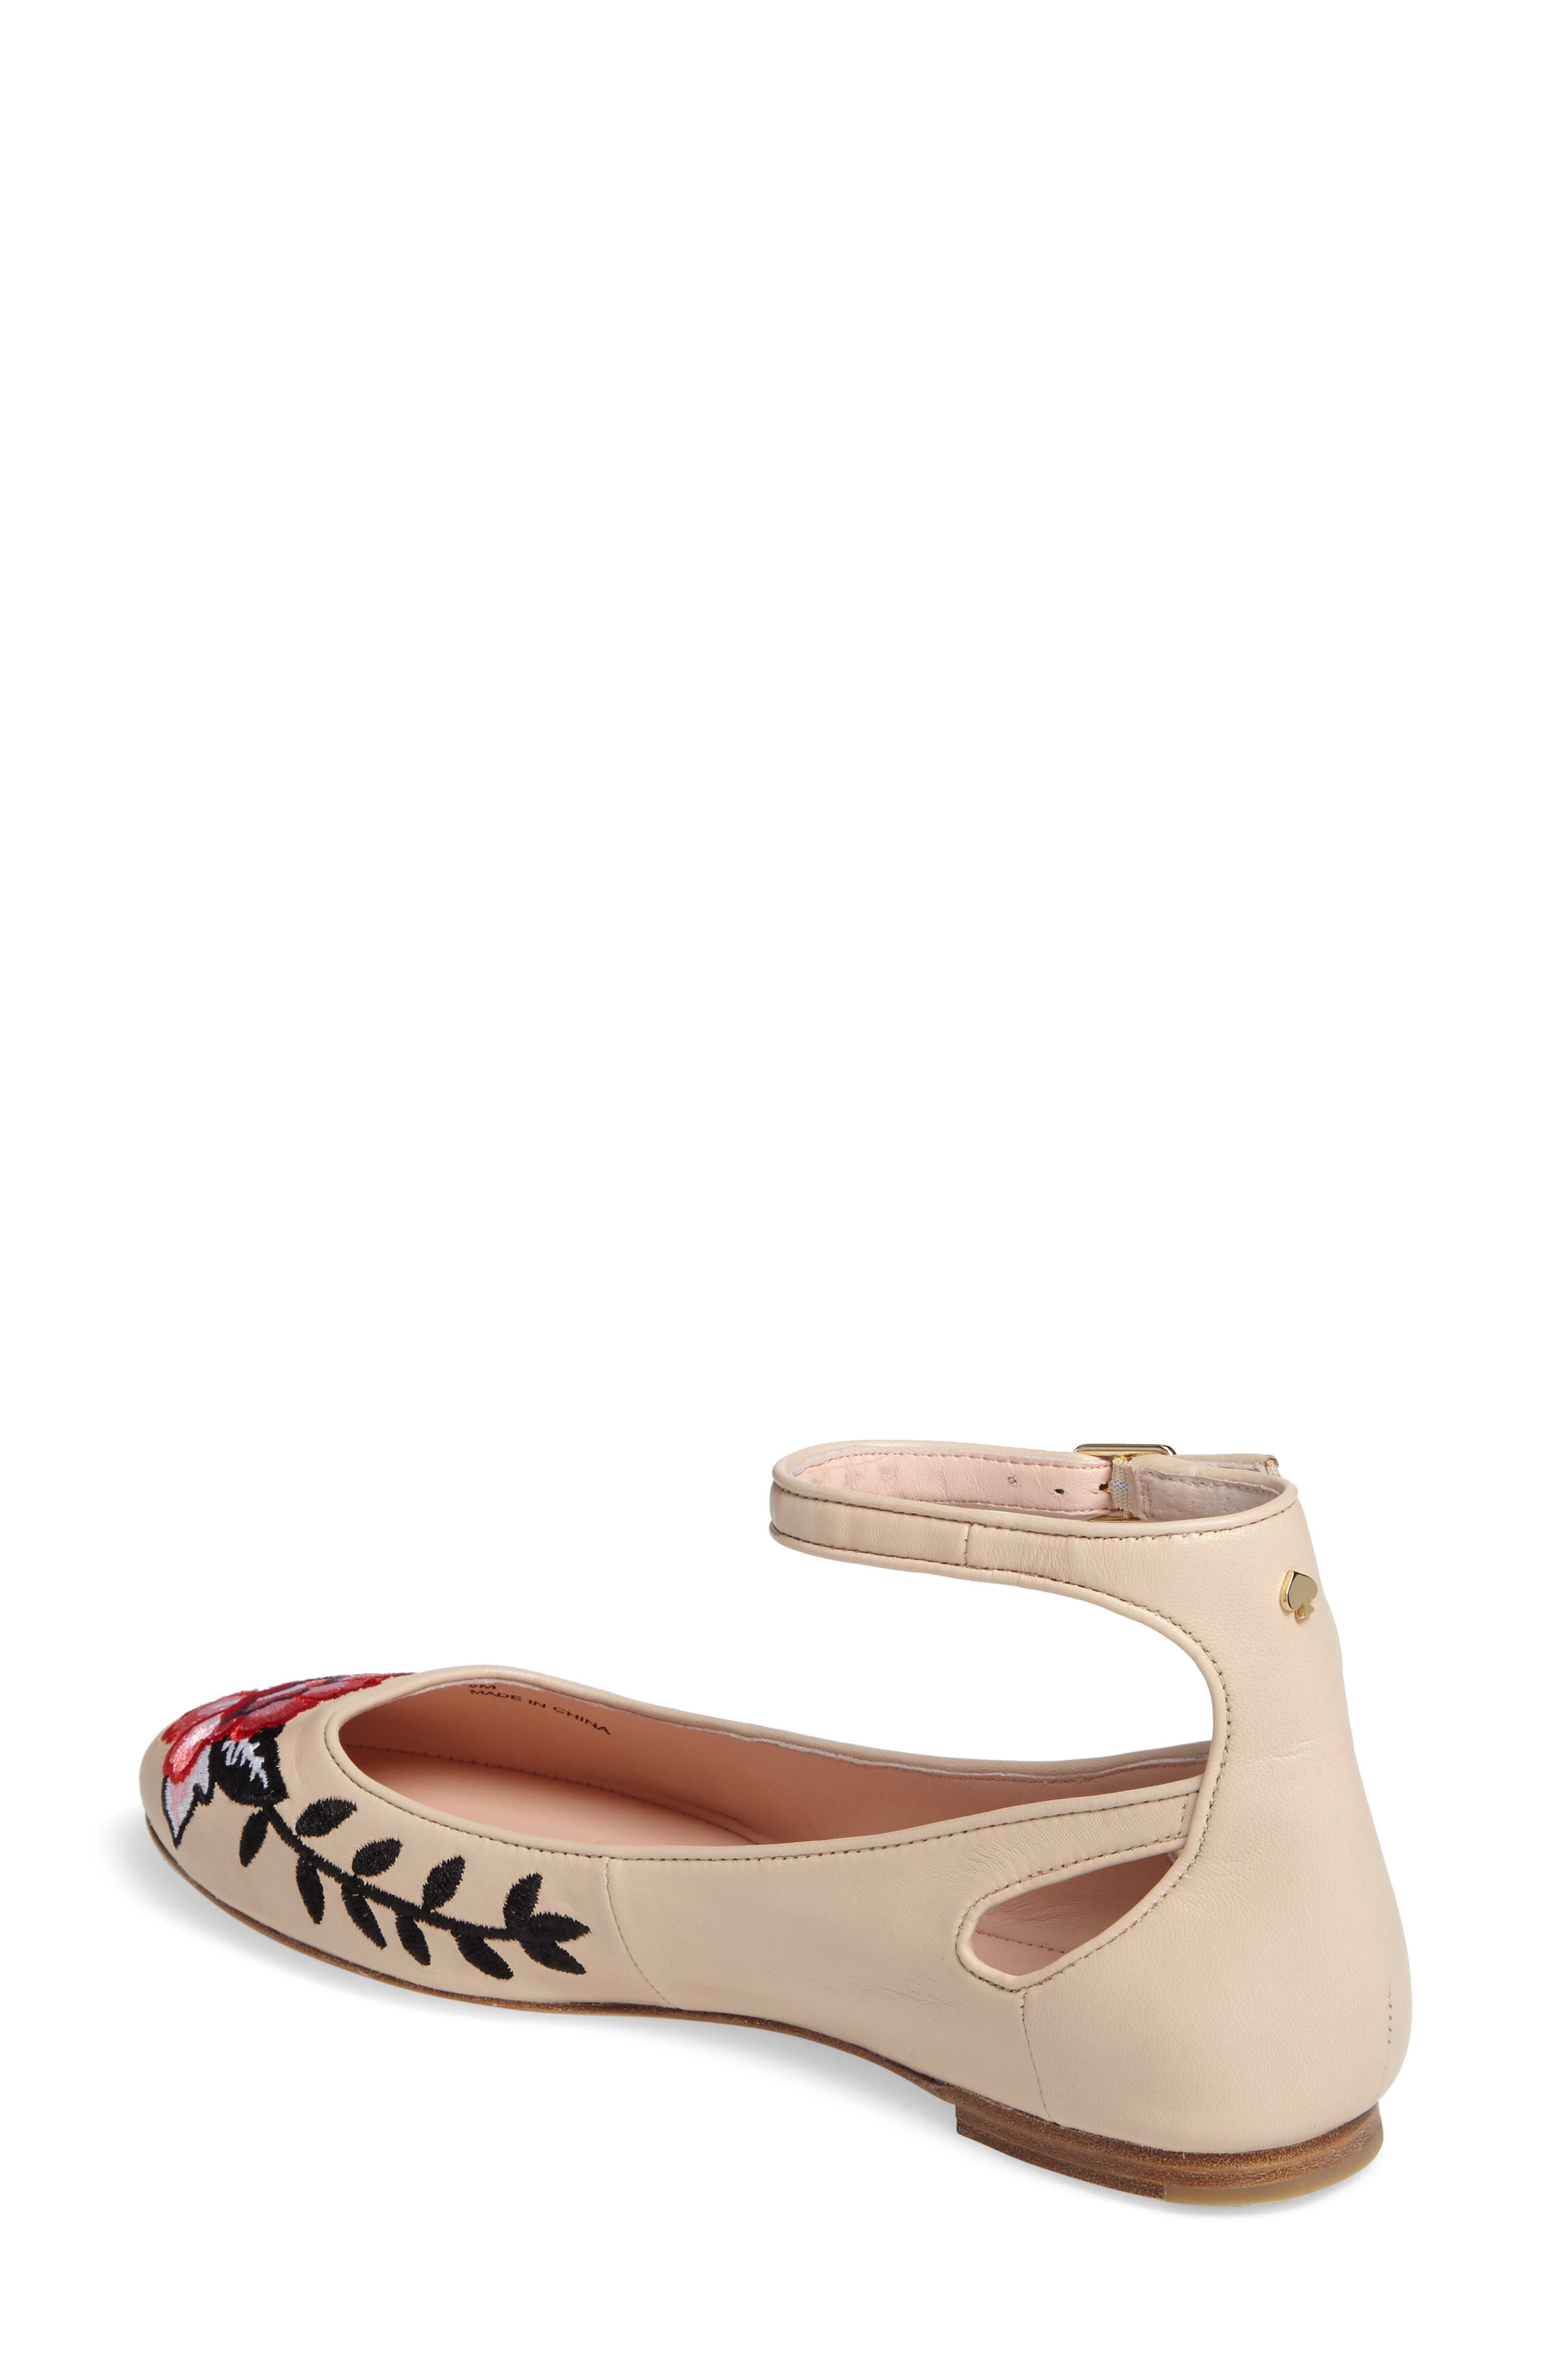 waren embroidered flat,                             Alternate thumbnail 2, color,                             Sand Nappa